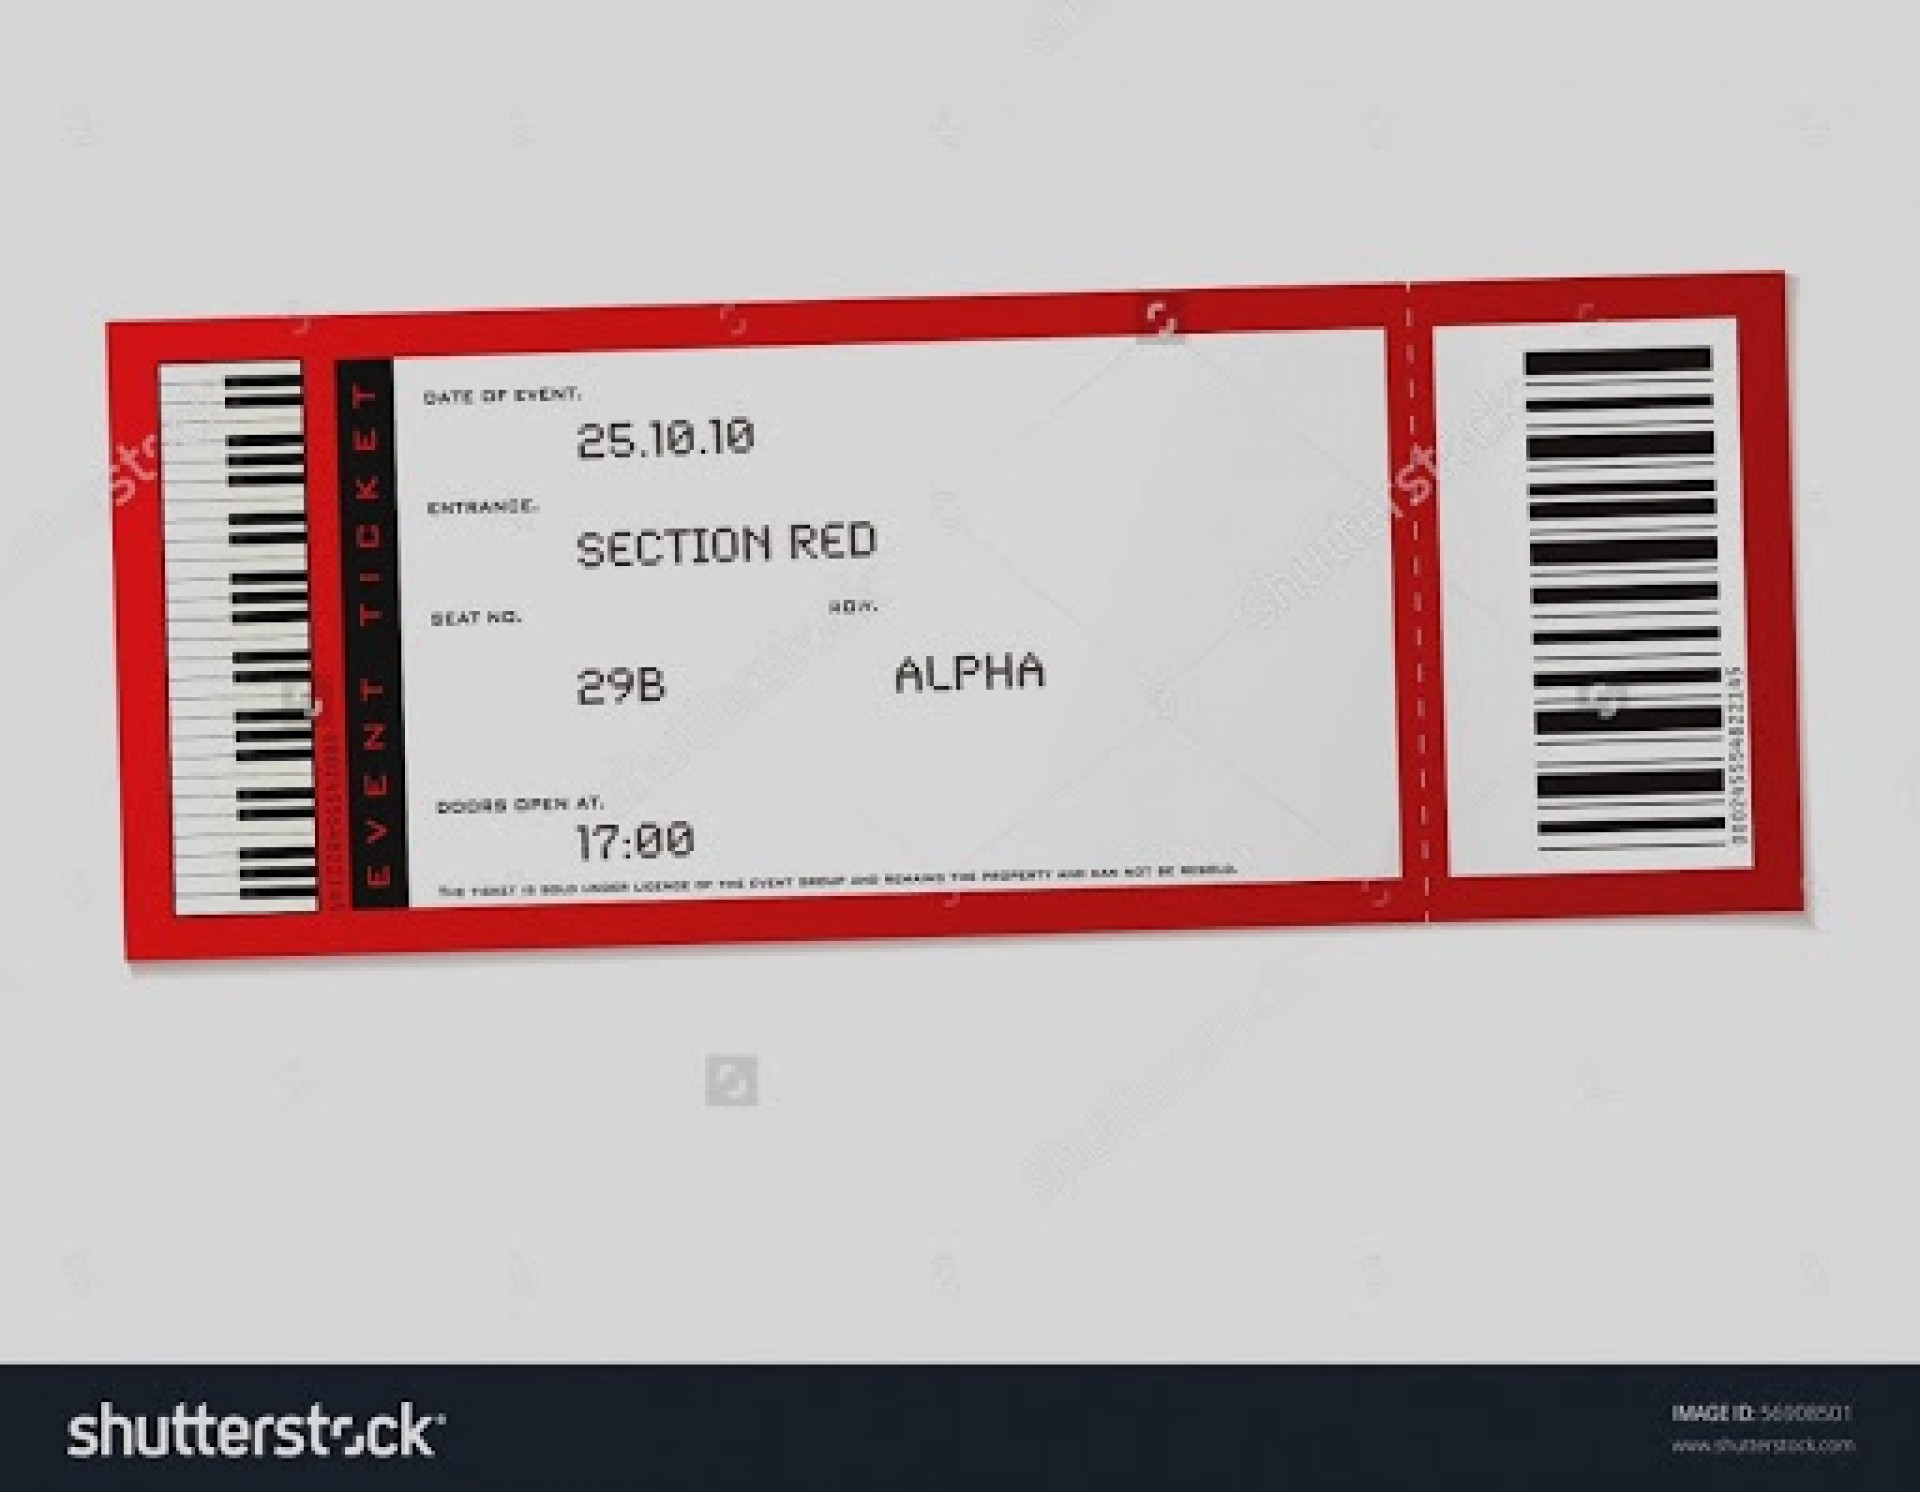 002 Astounding Free Editable Concert Ticket Template Picture  Psd Word1920